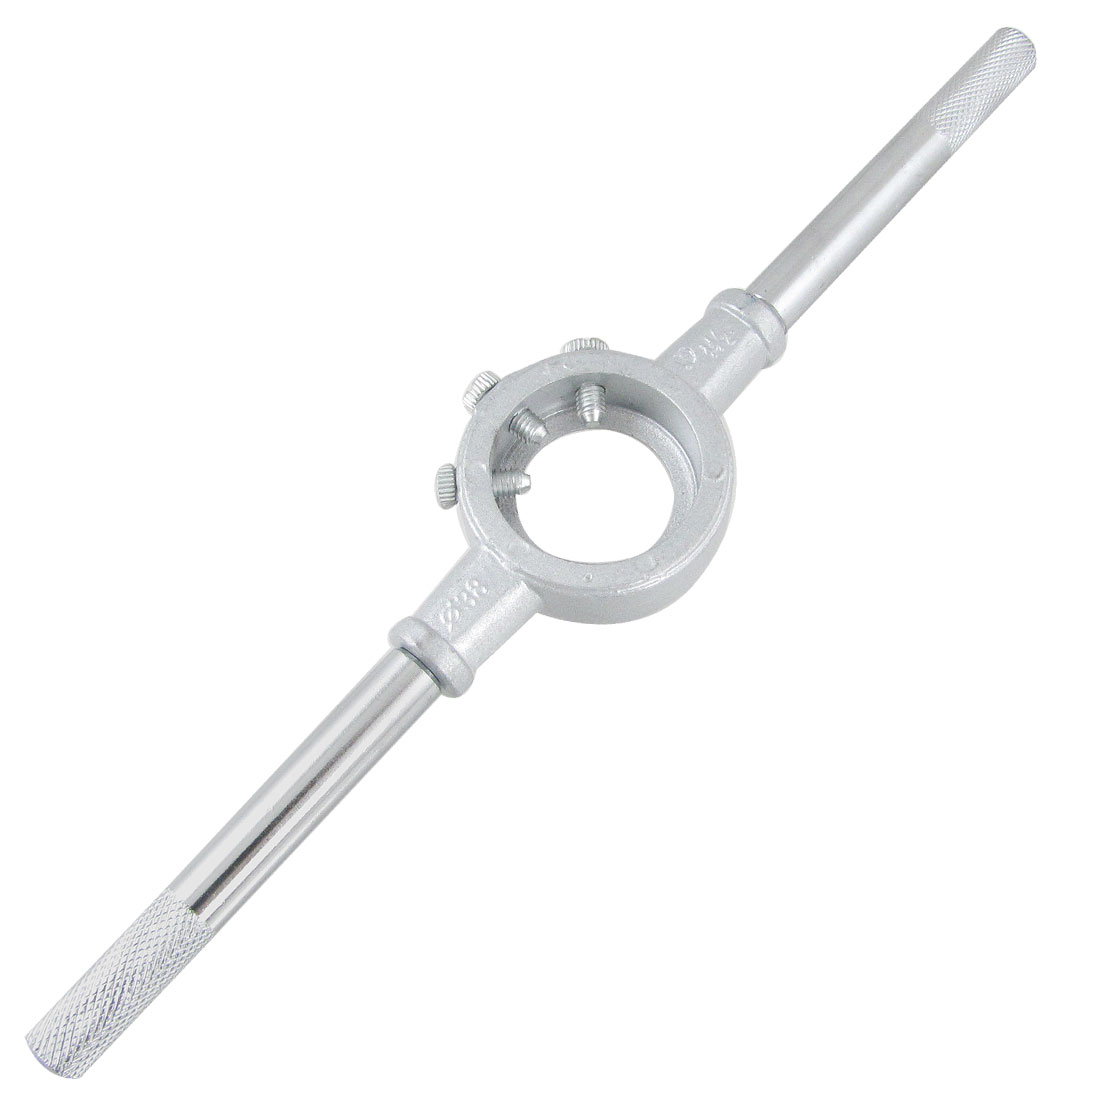 "38mm 1-1/2"" OD Die Stock Handle Wrench 3 Screw Round Die Holder"